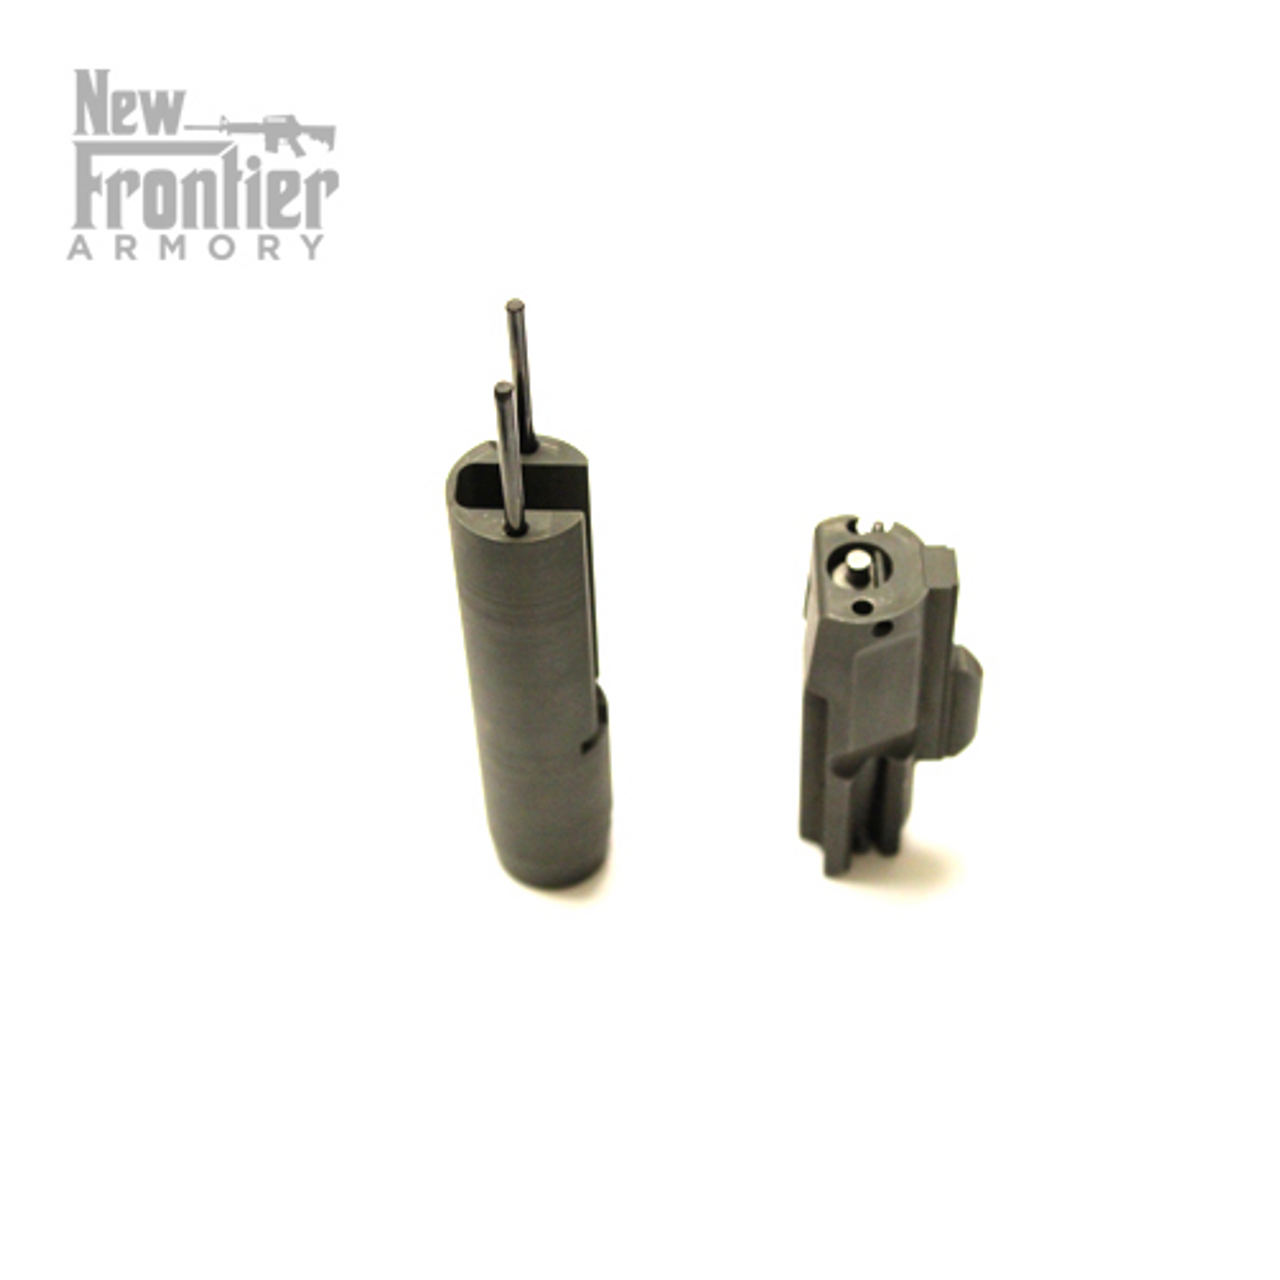 New Frontier Armory AR-9 Modular 9mm BCG (Glock & Colt Compatible)